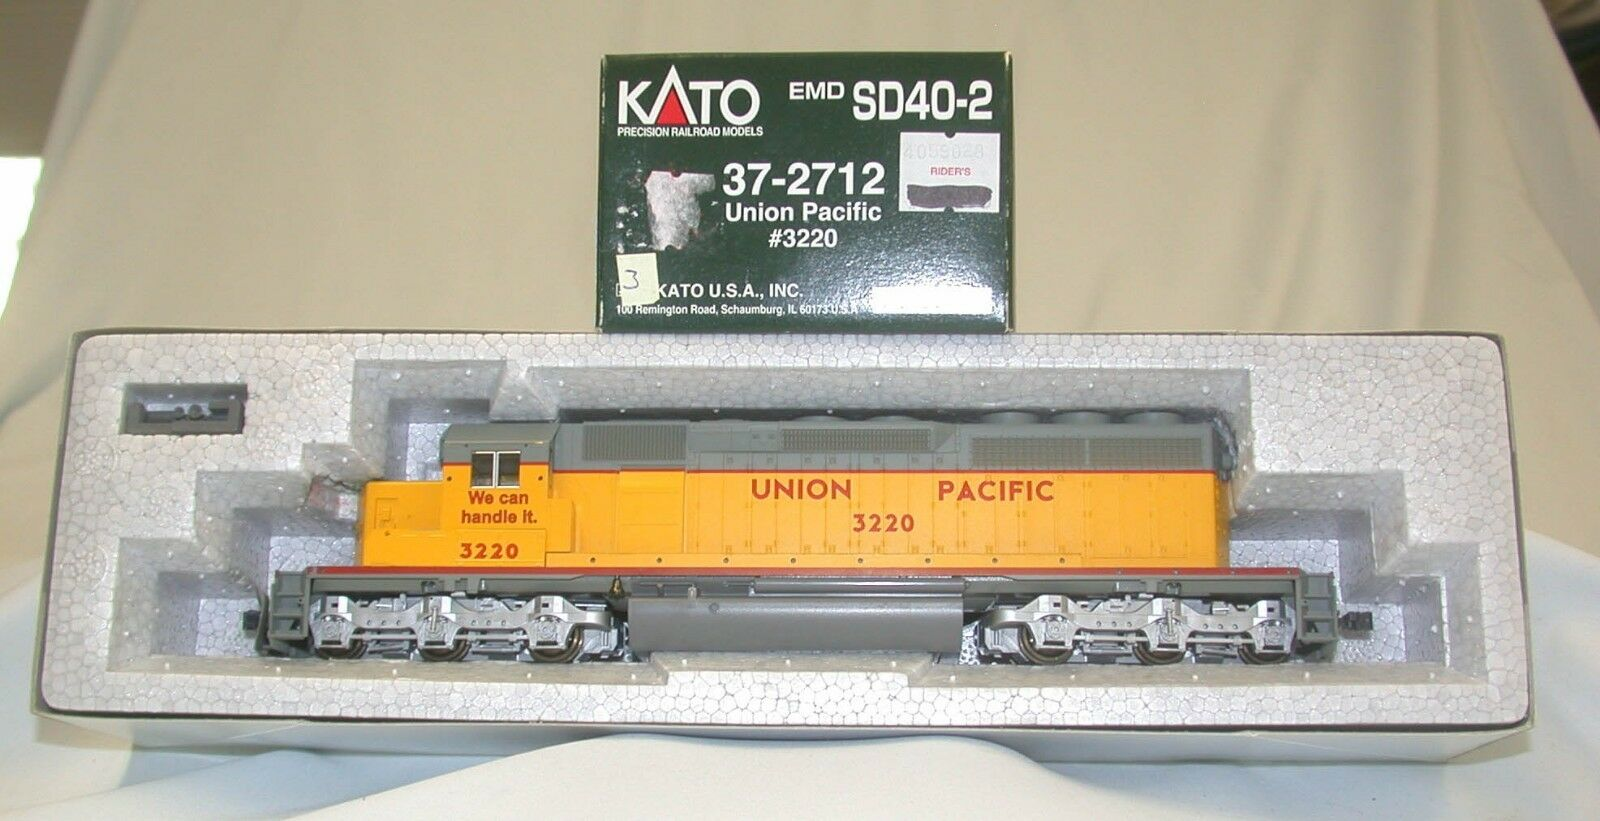 Katou 37 - 2712 - - - EMD sd40 - 2 - c United Pacific 0e4